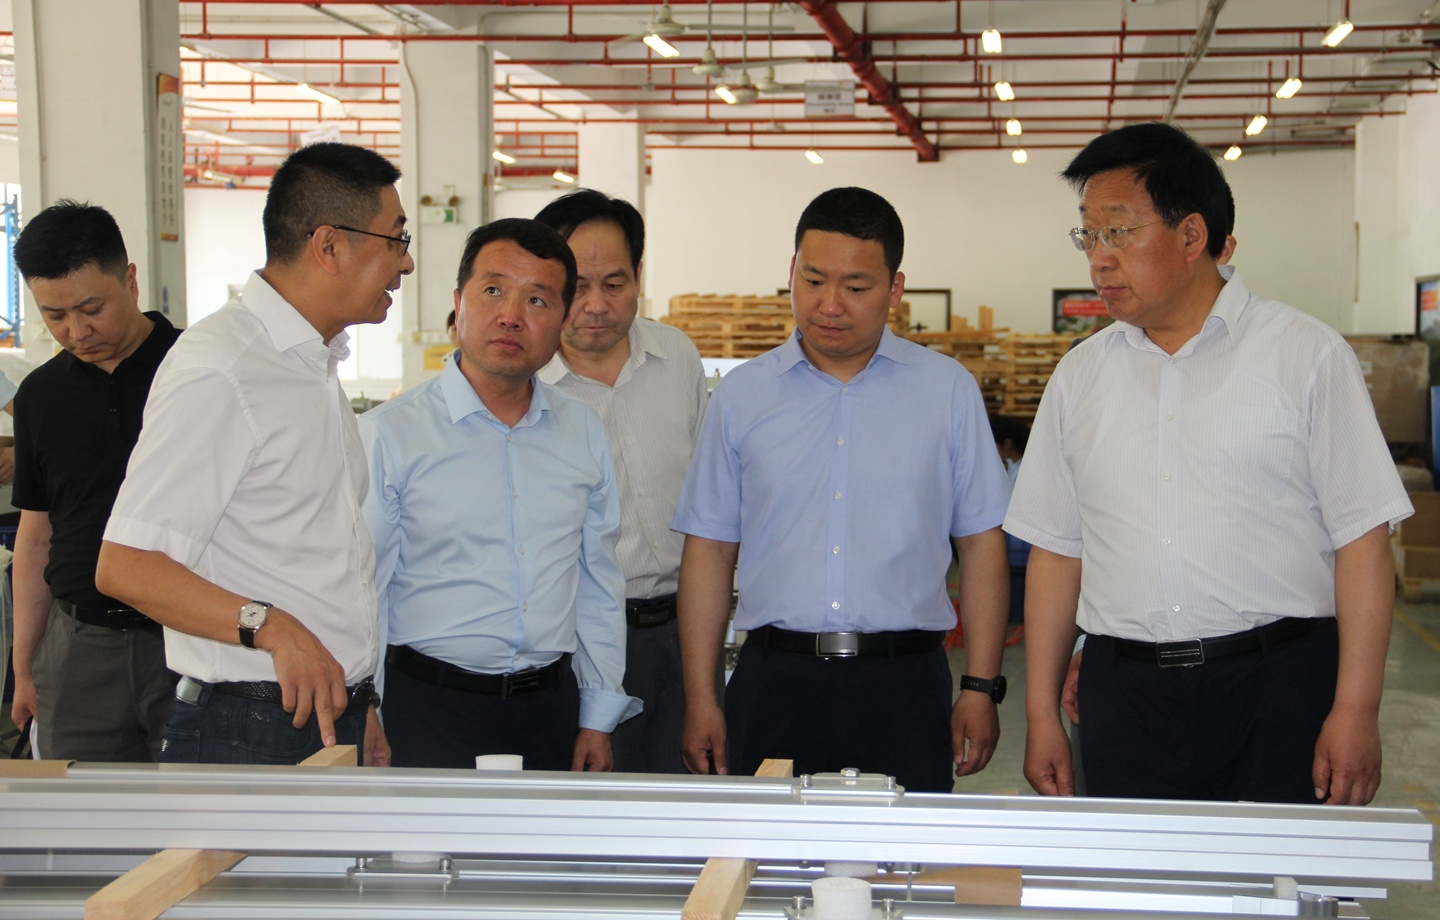 Government Officials from Kongtong District visited Clenergy headquarters in Xiamen, China